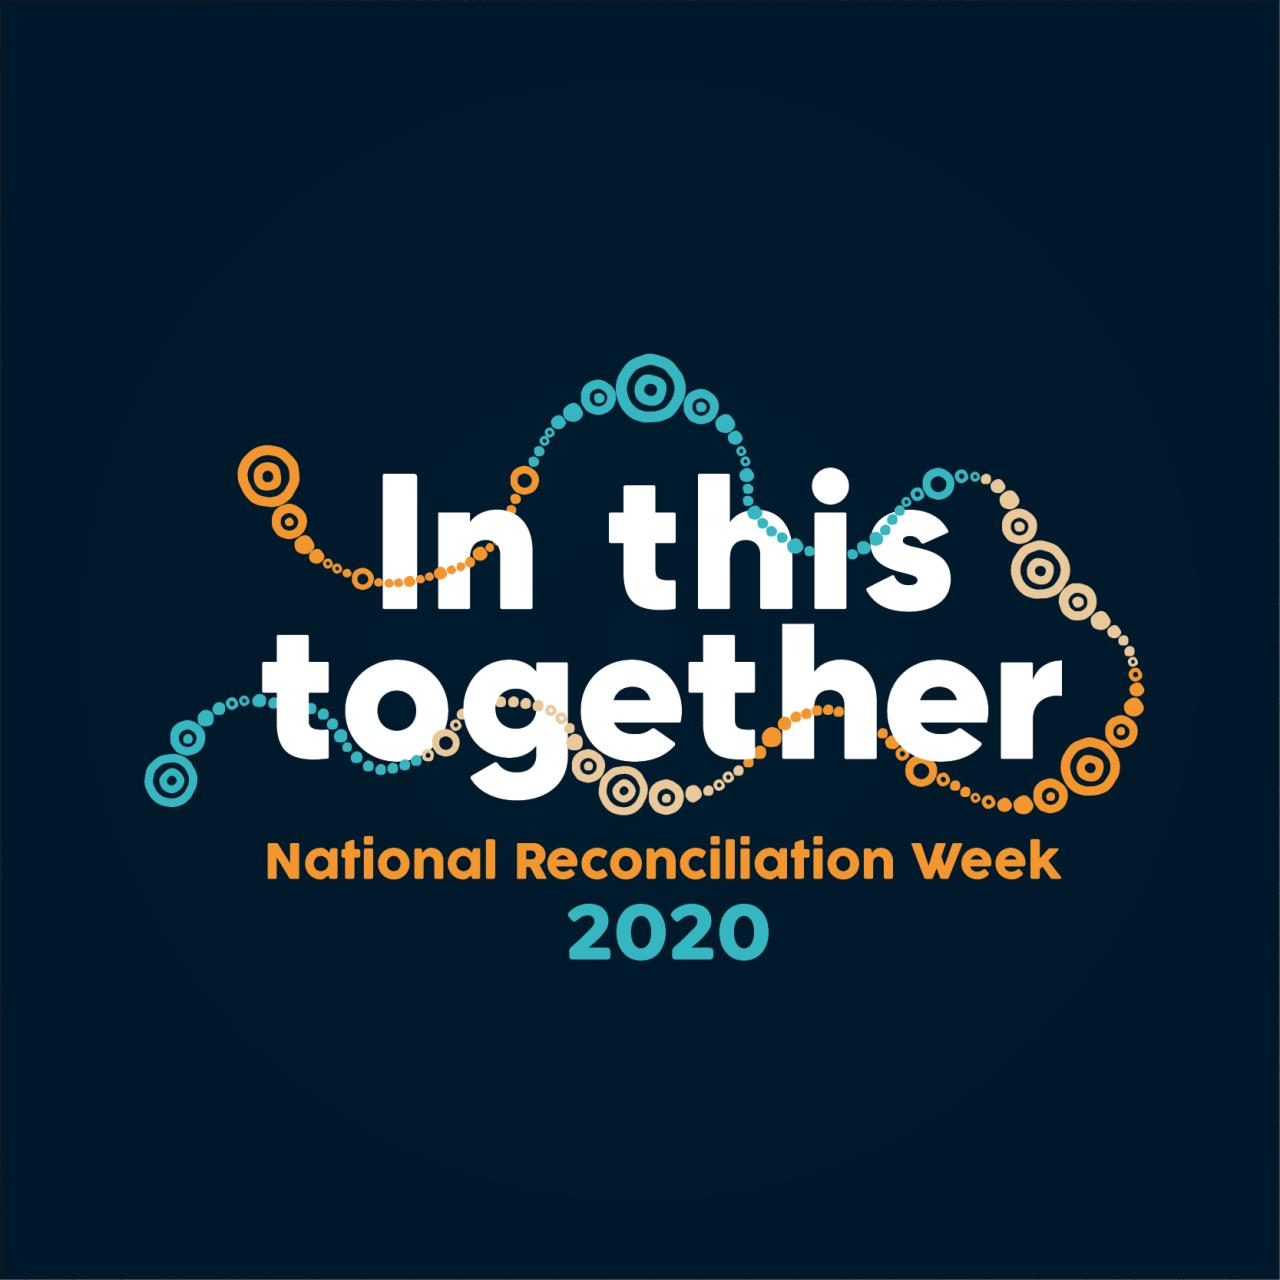 Town Reflects on the Importance of Reconciliation Week